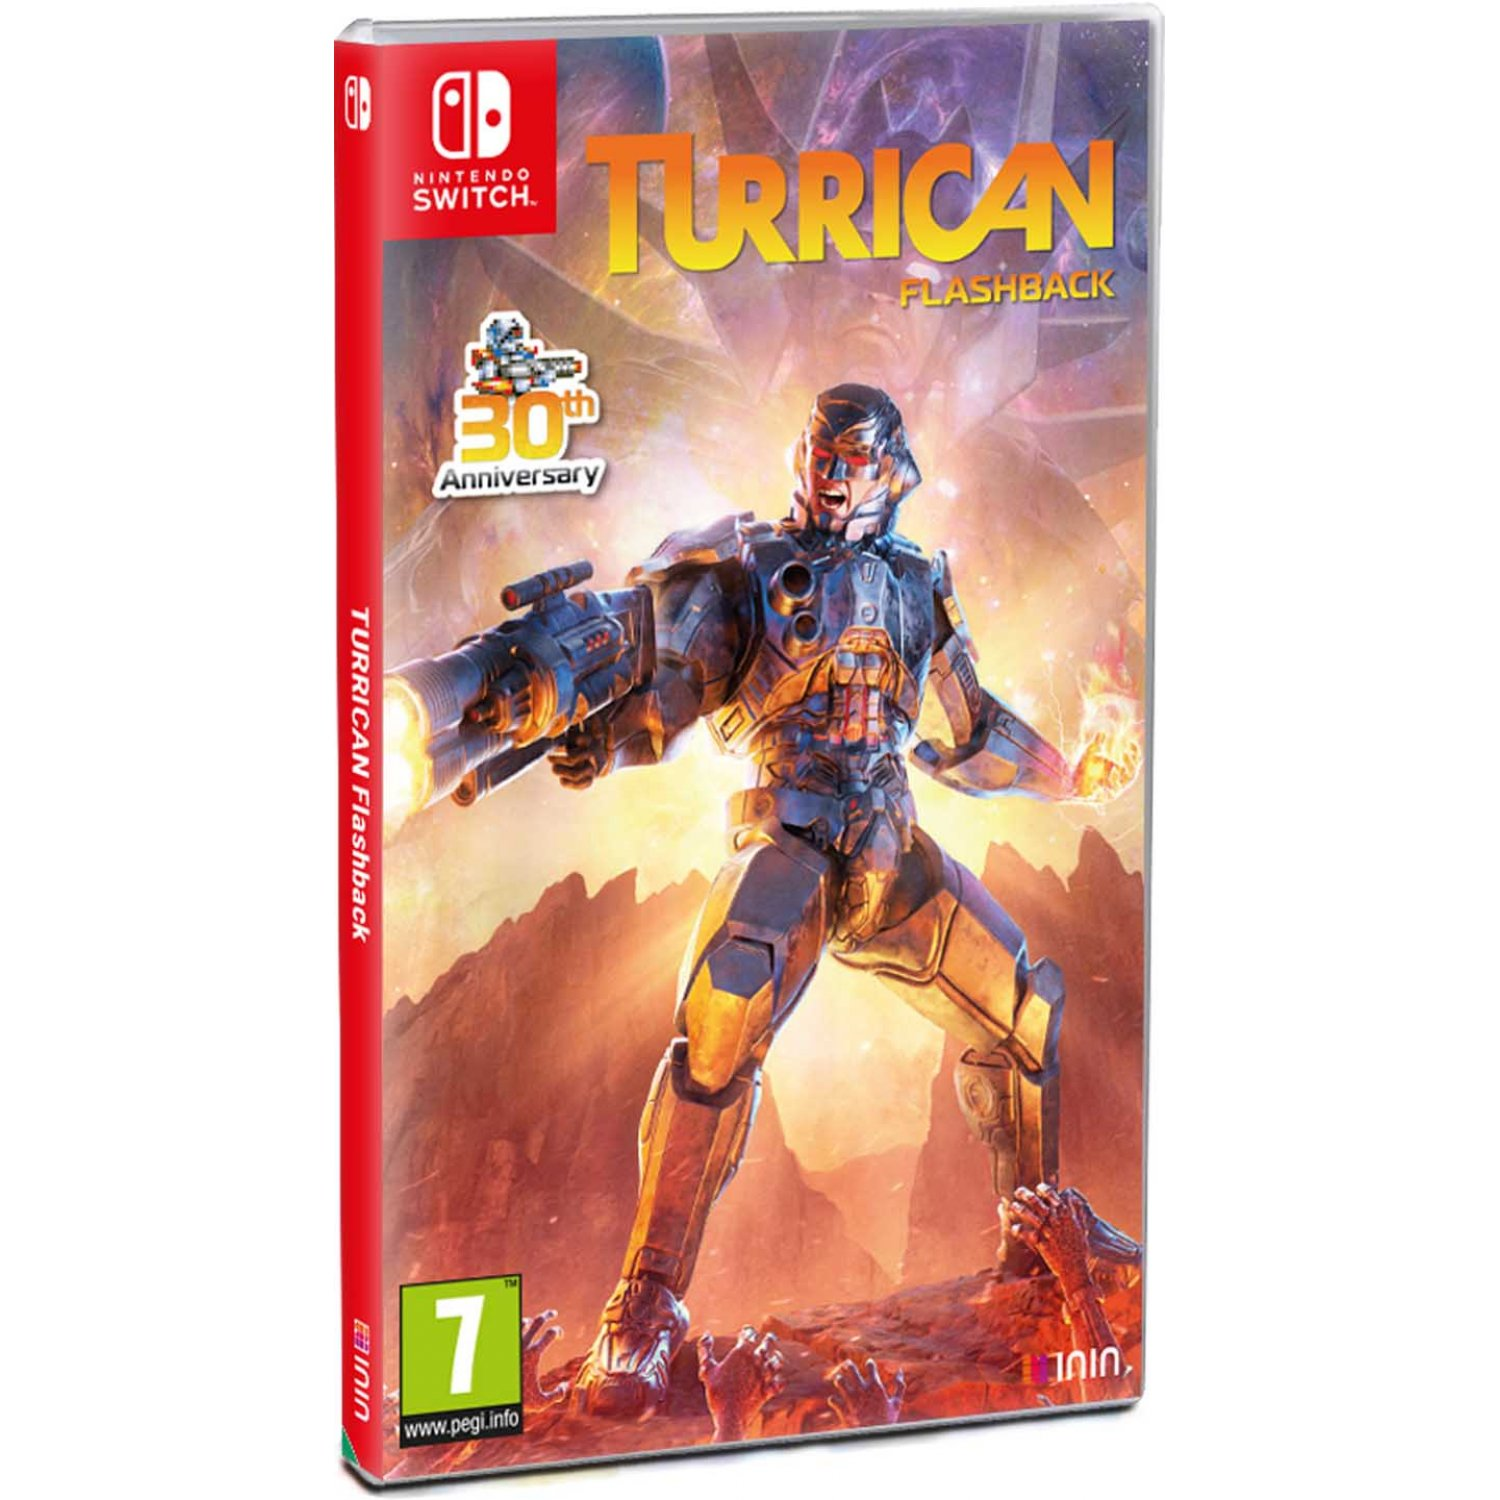 Nintendo Switch - The full set - Page 6 Turrican-flashback-640413.1